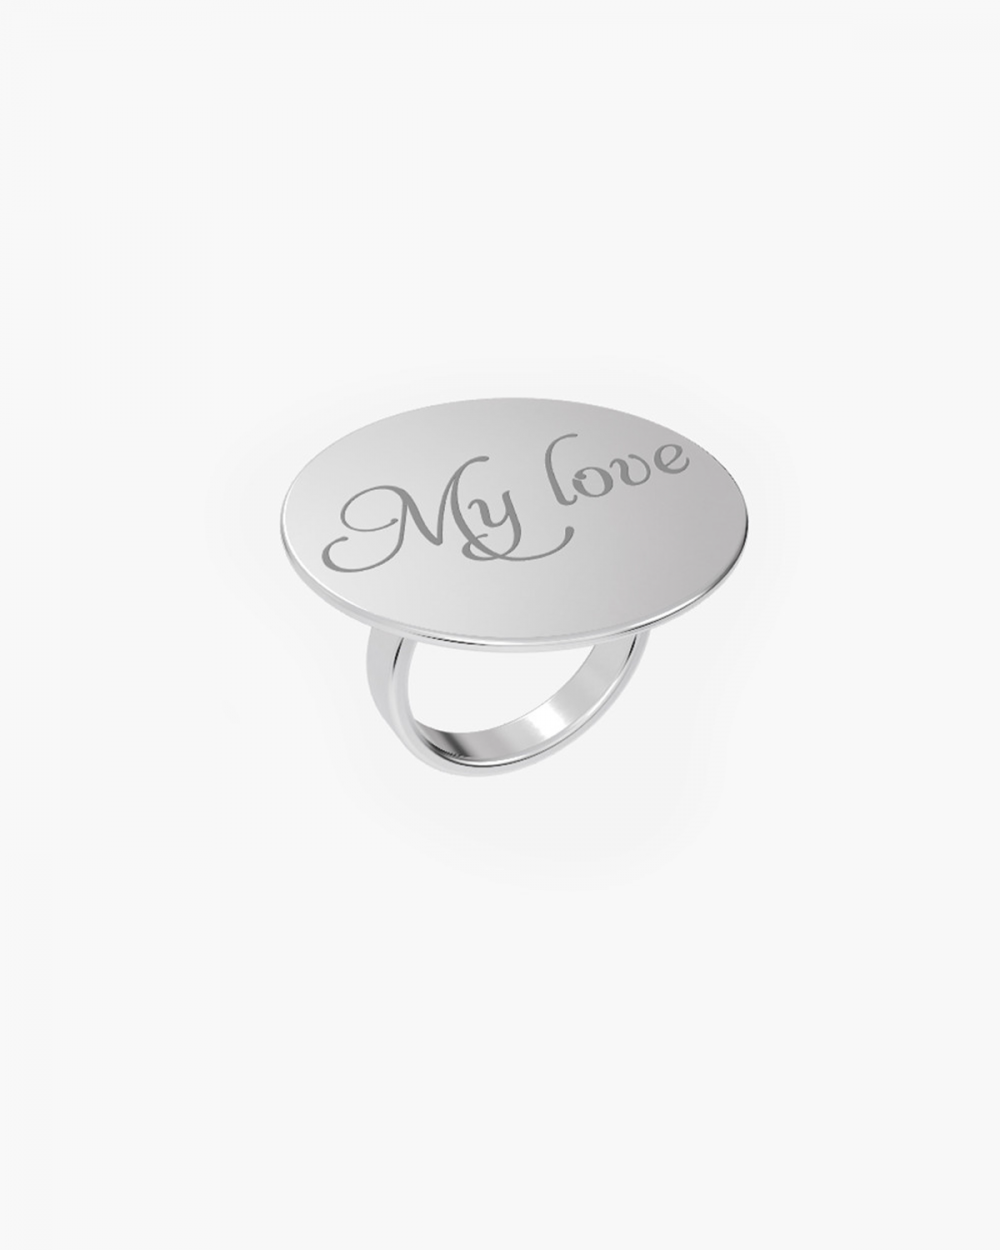 MYNOVE25 MEDIUM ROUND PLATE RING 30 MM NOVE25